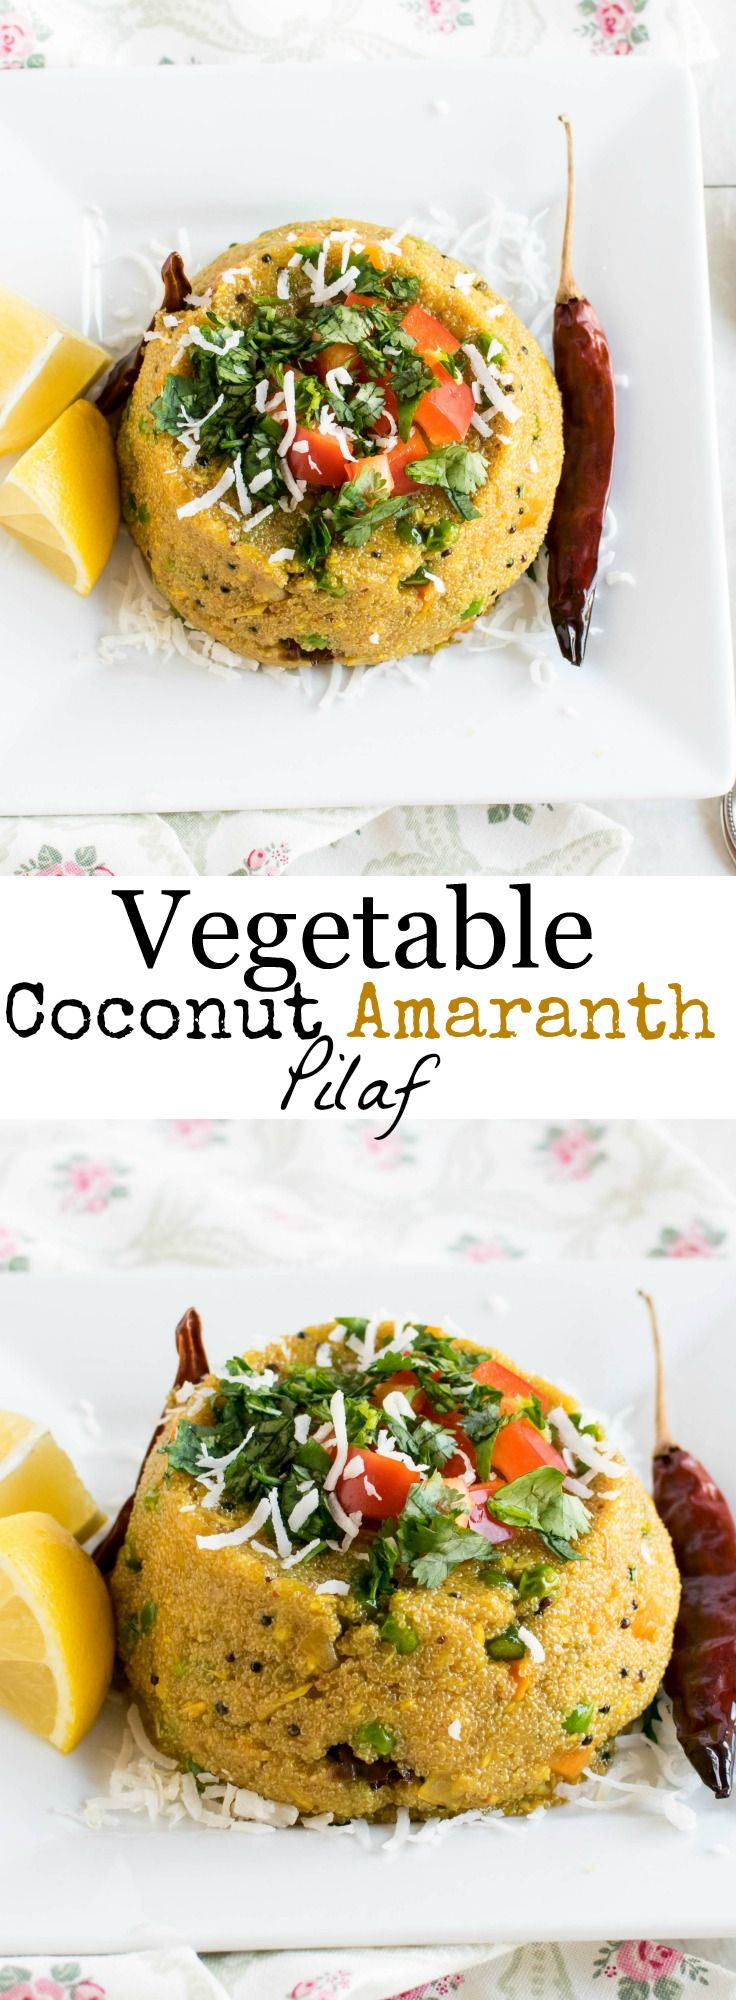 Vegetable Coconut Amaranth Pilaf | warm and tasteful vegan meal flavored with spice mix, cooked in fresh shredded coconut and folded in with gluten free amaranth grains tastes amazing at all times | kiipfit.com